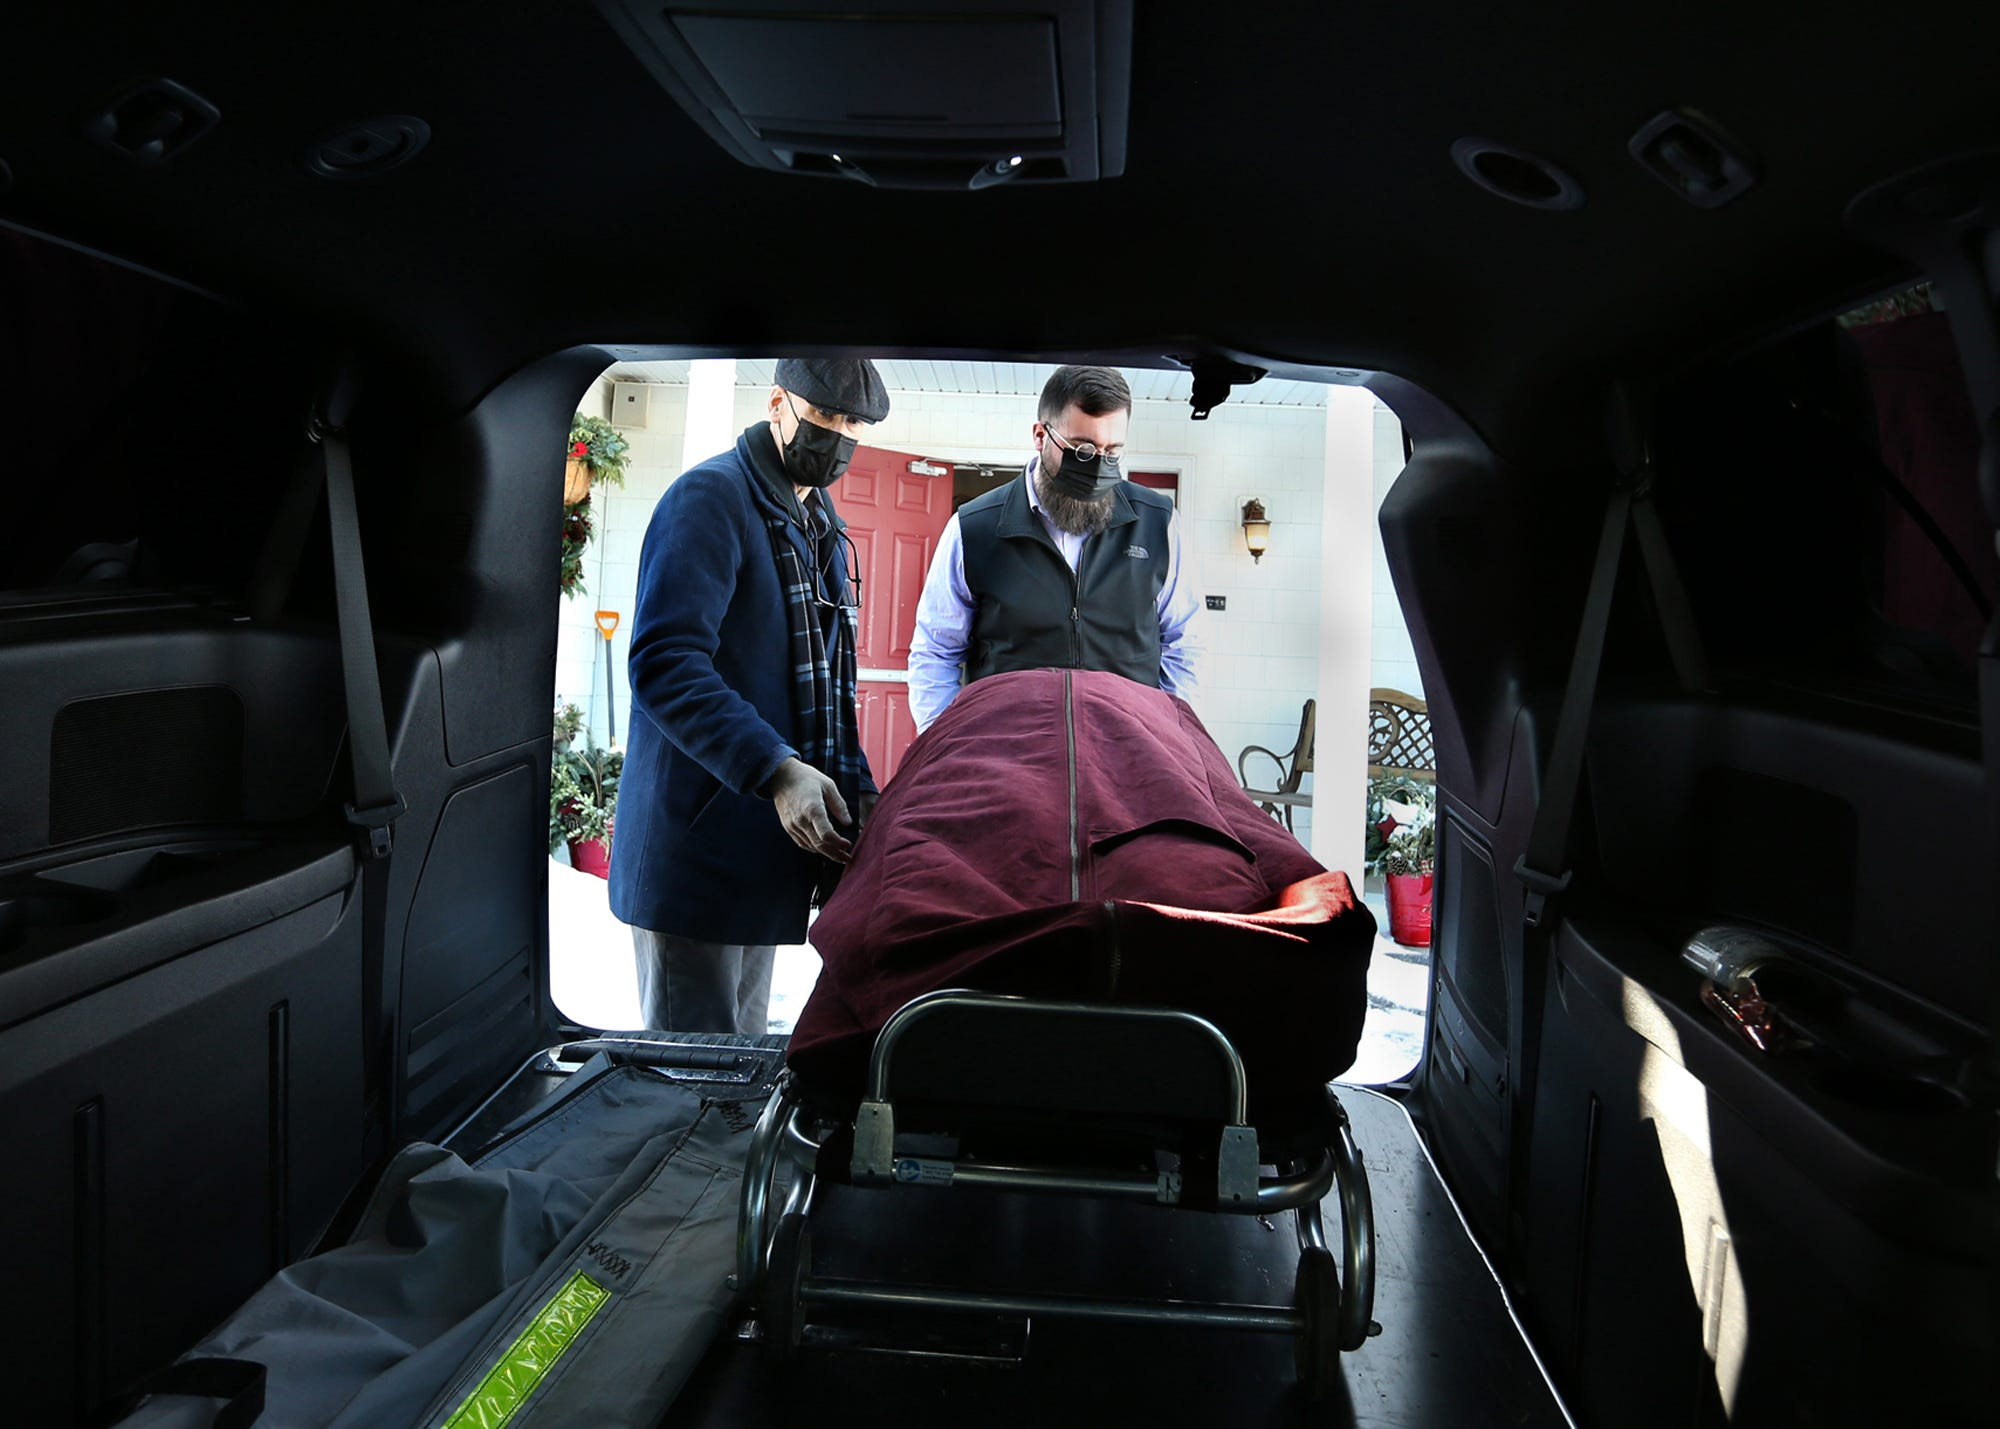 """After bringing a body into the care of J.S. Pelkey and Son Funeral, Jeff Pelkey, left, and Connor Martel gently remove the stretcher and bring the deceased individual through the front door of the funeral home. Pelkey says, """"People deserve to come in and out the front door. The front door is as important for the deceased as it is for the families."""""""